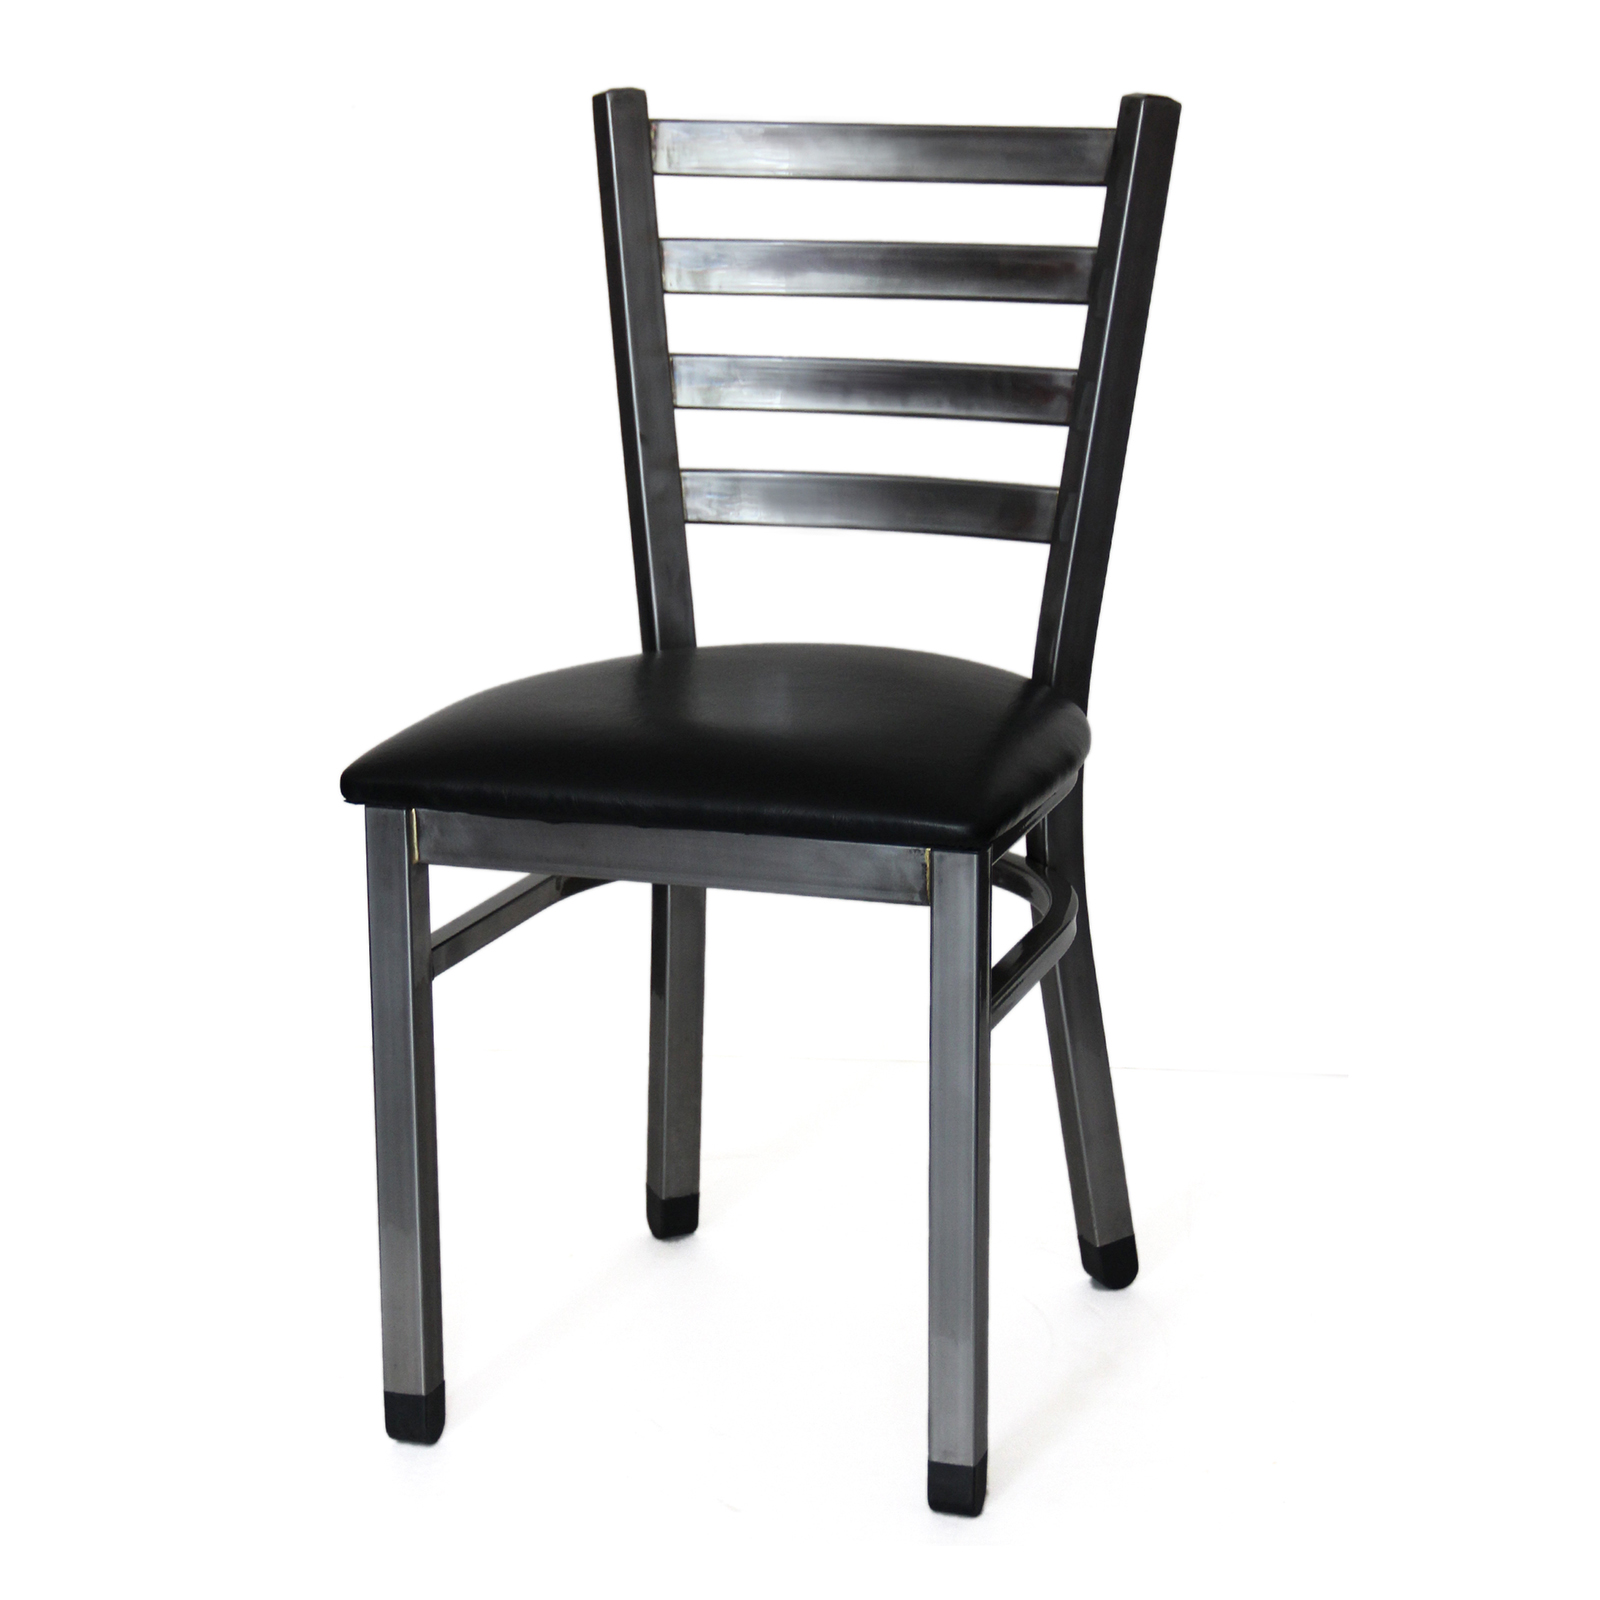 BK Resources BK-MLSC-CL-W chair, side, indoor